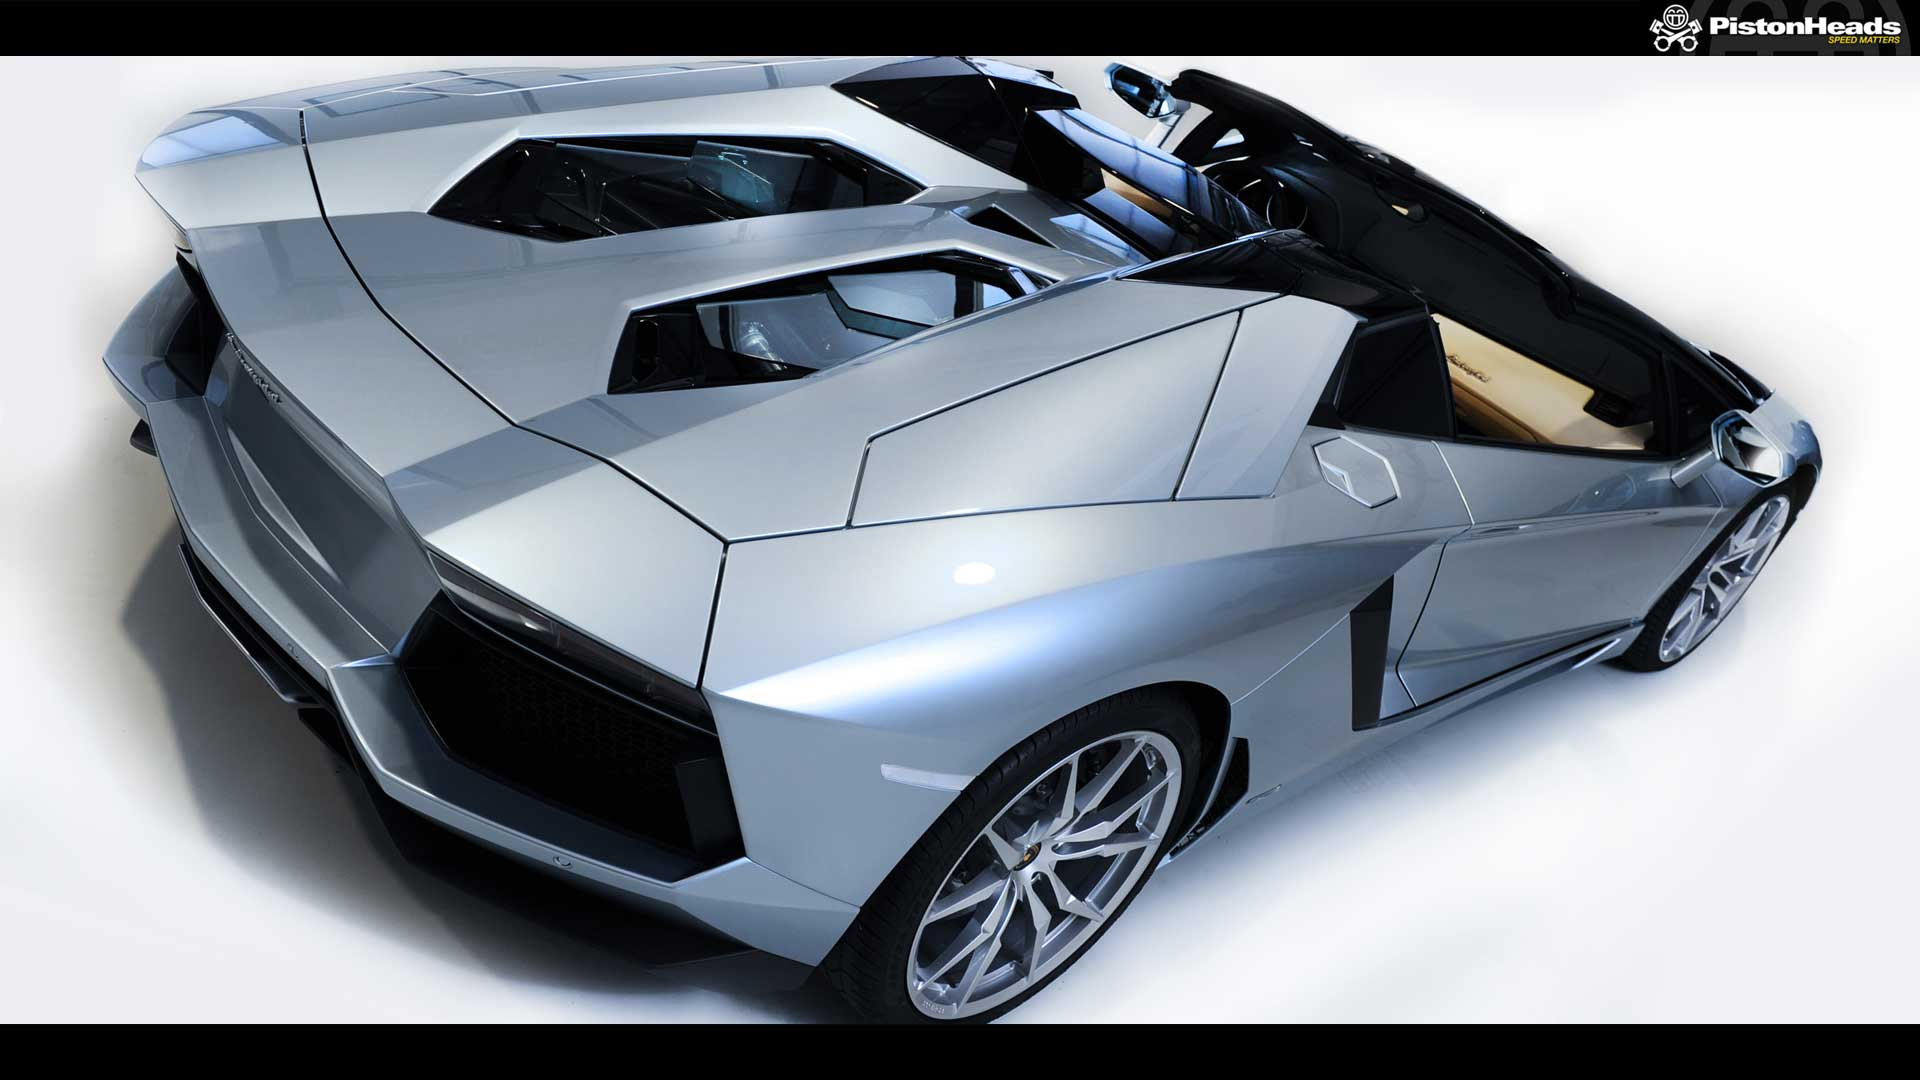 Pic Of The Week Aventador Roadster Pistonheads